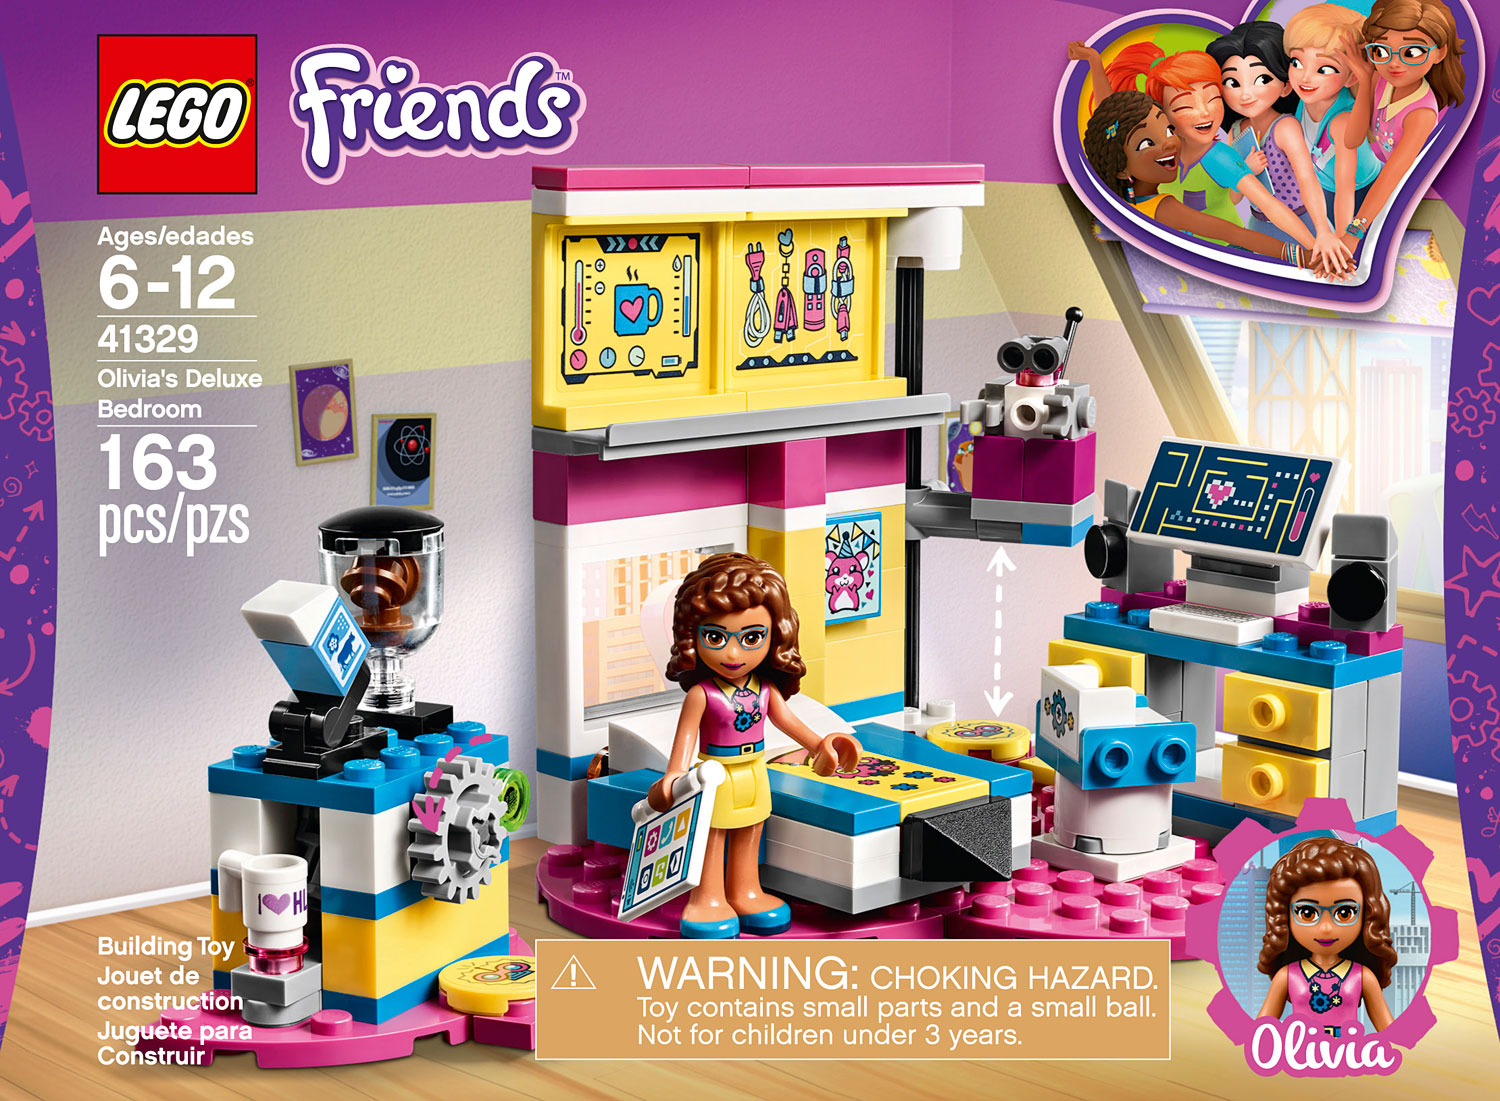 Lego Friends Olivia's Zwembad 41090 41329 Lego Friends Olivia 39s Deluxe Bedroom Lego